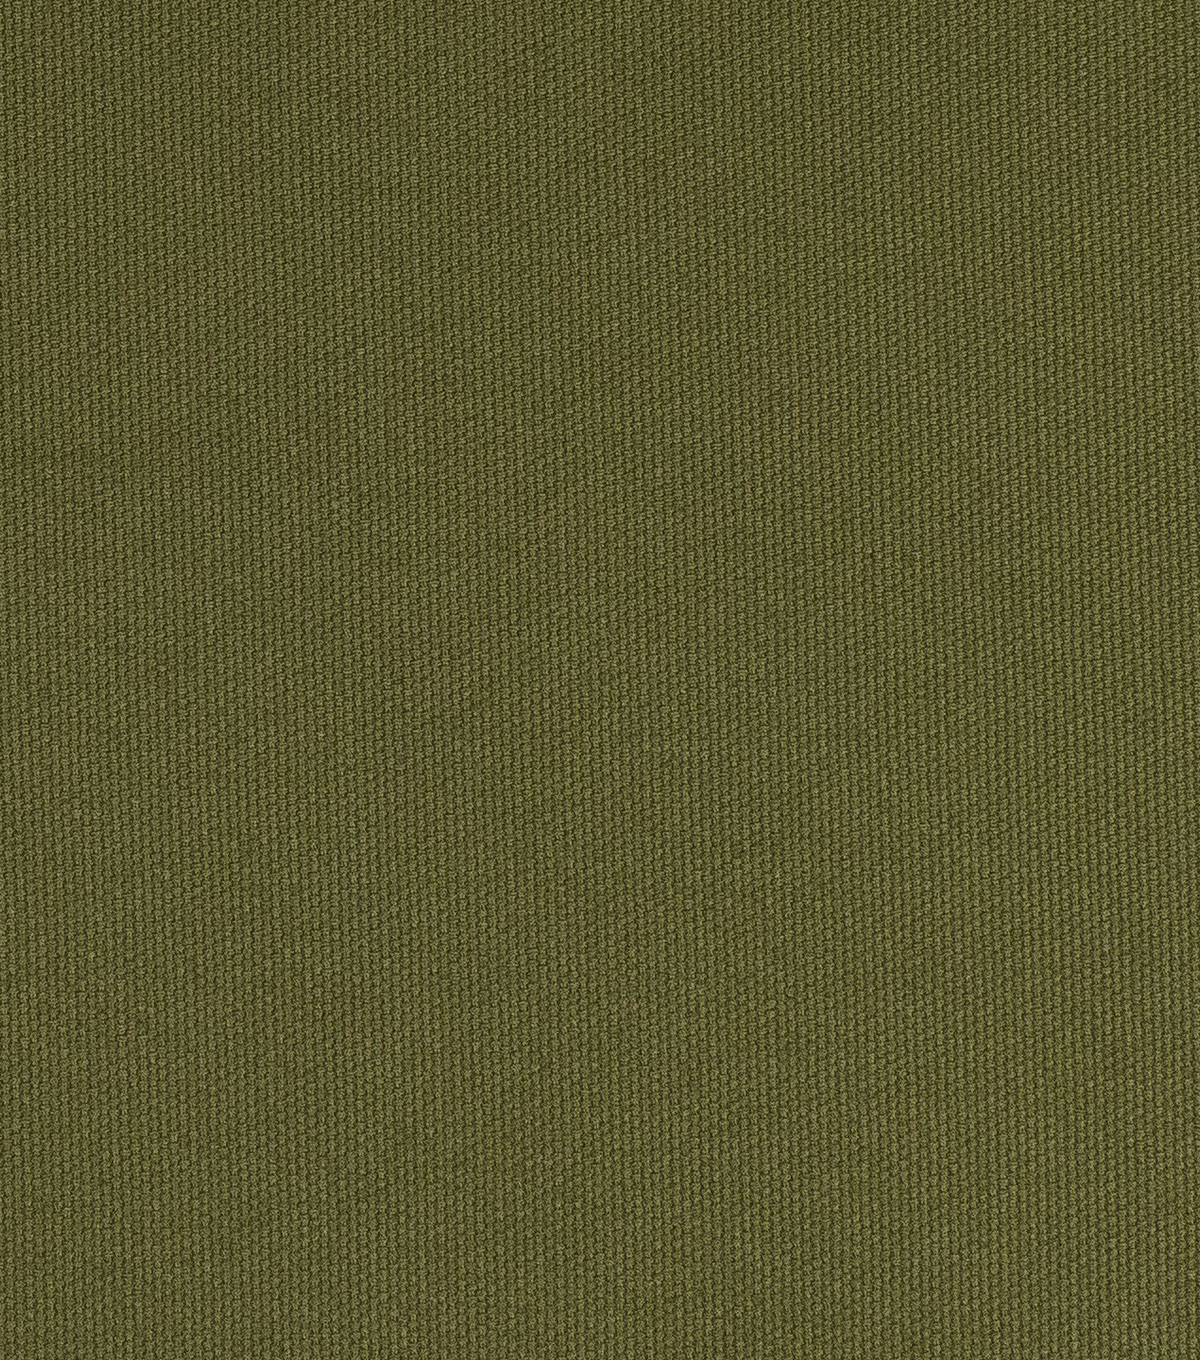 Home Decor 8\u0022x8\u0022 Fabric Swatch-Elite Orion Olive Green